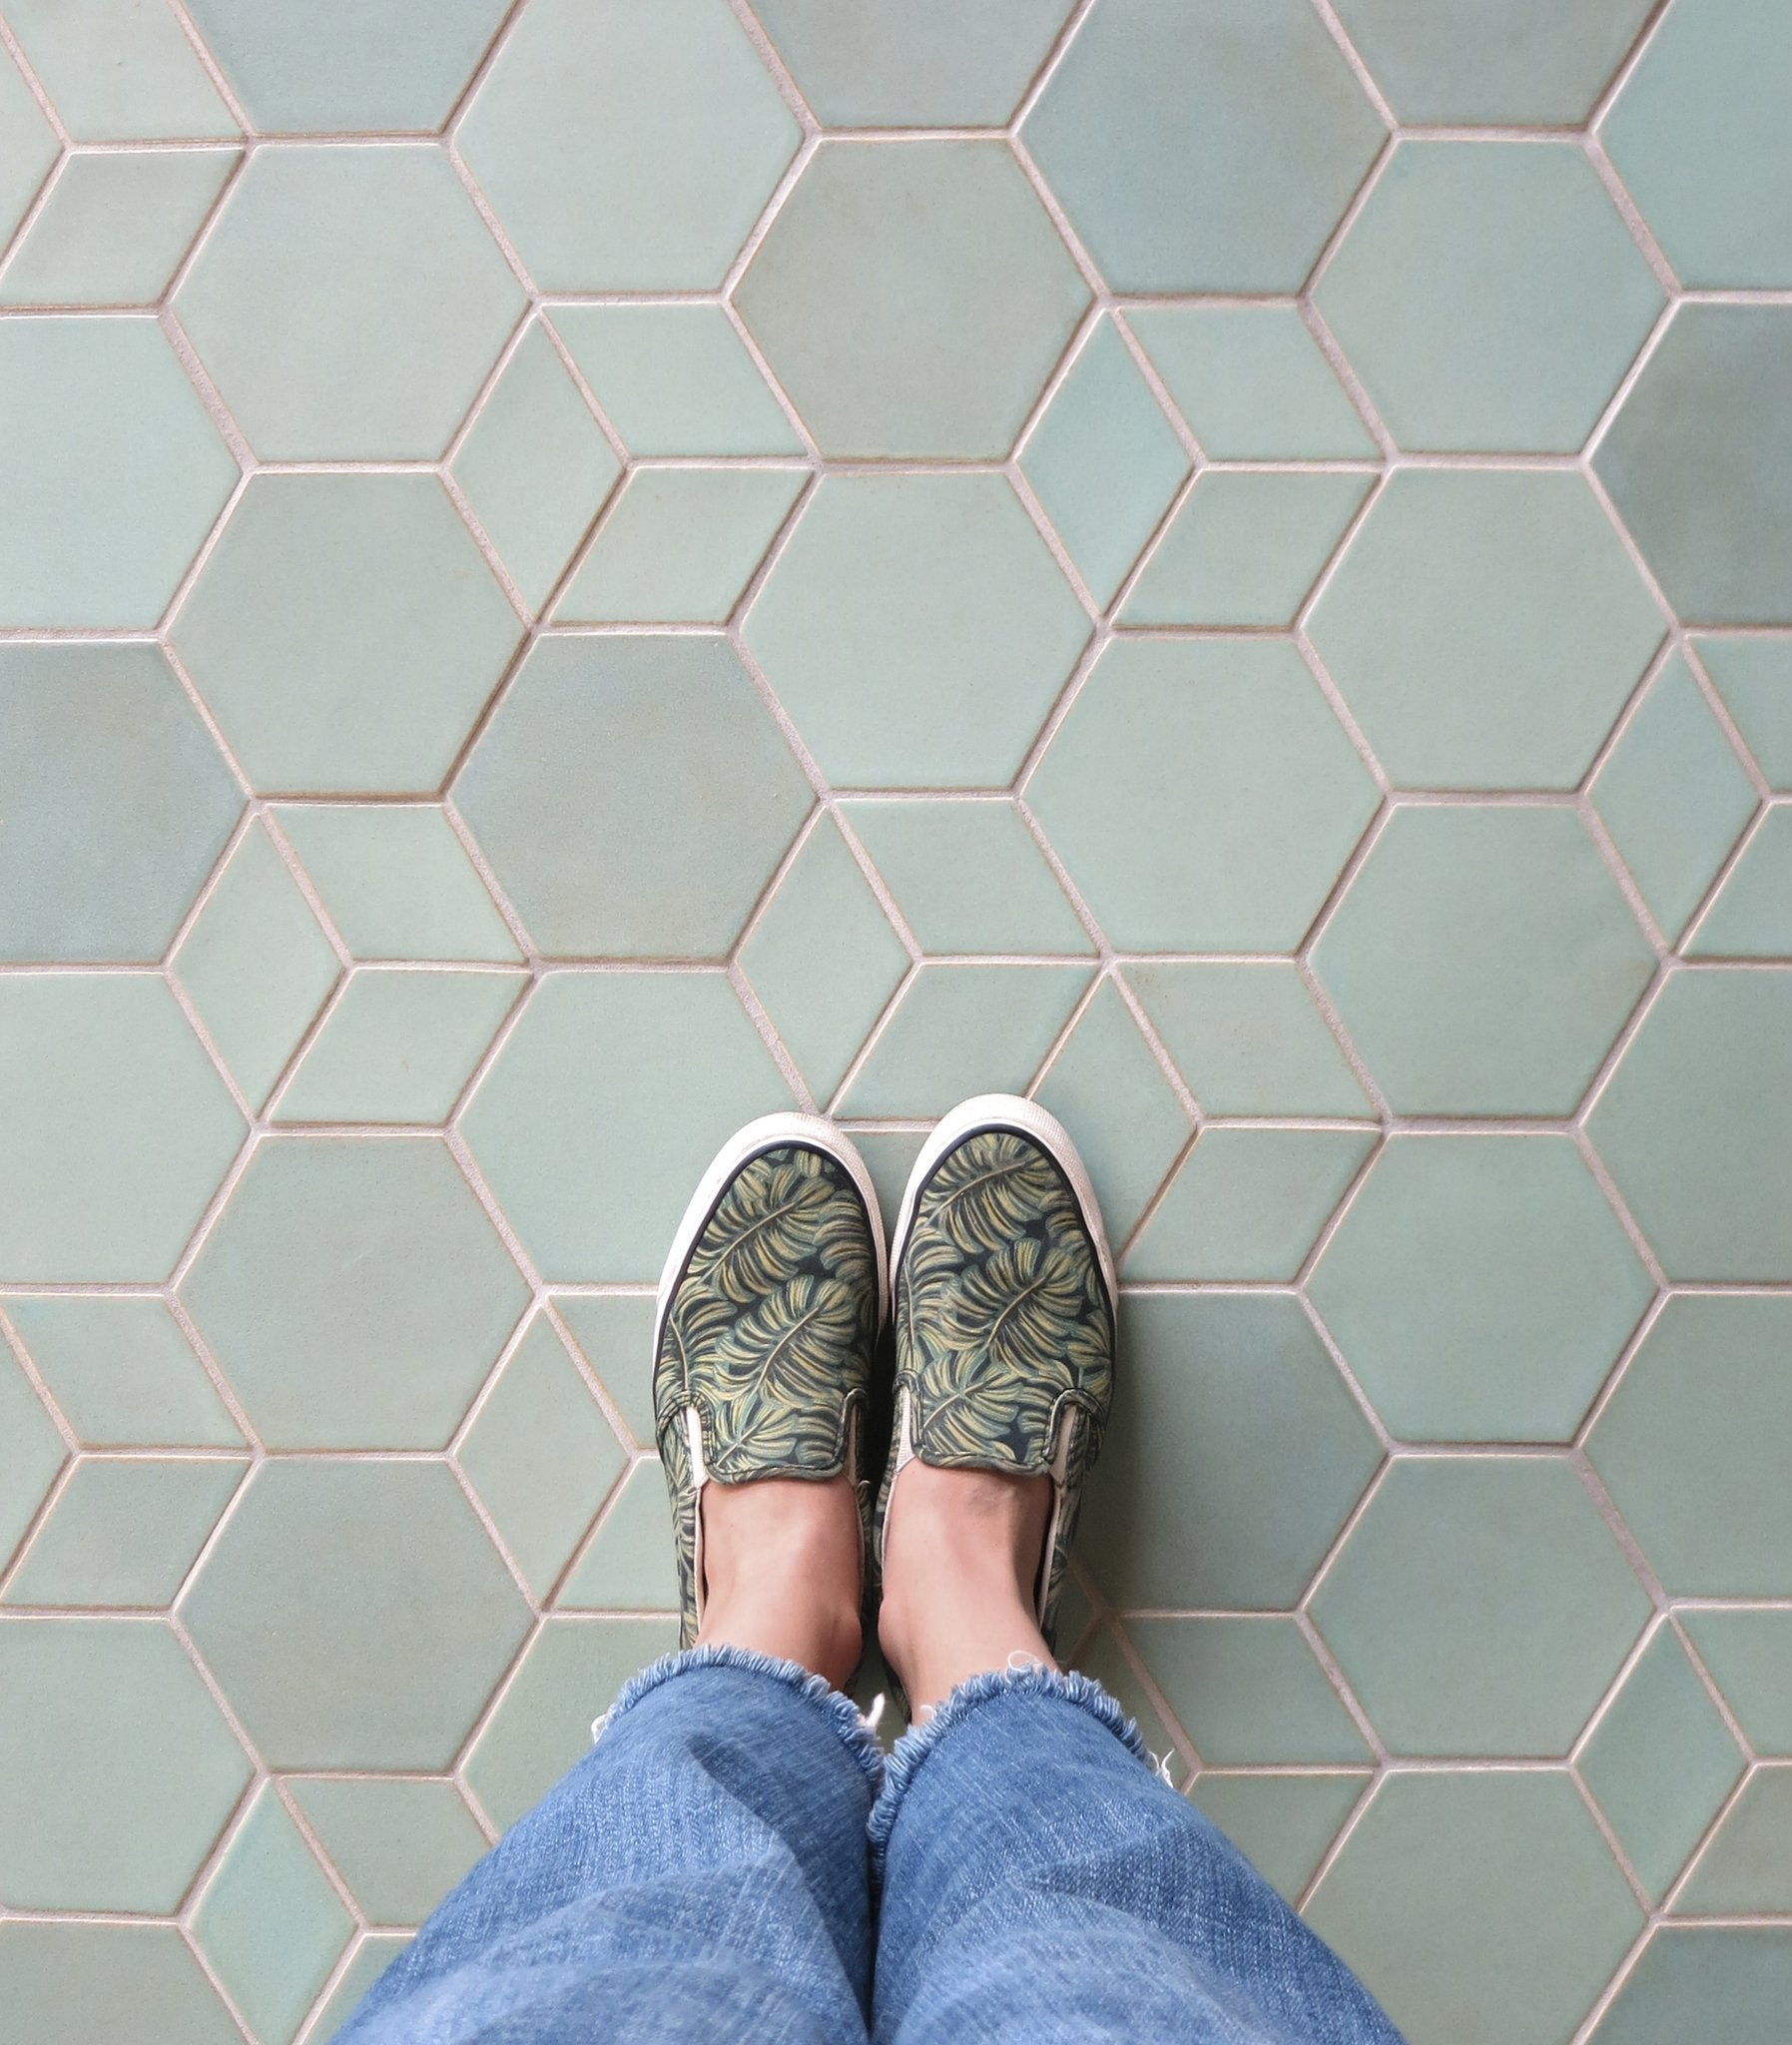 Mixed Shapes Floor Tile